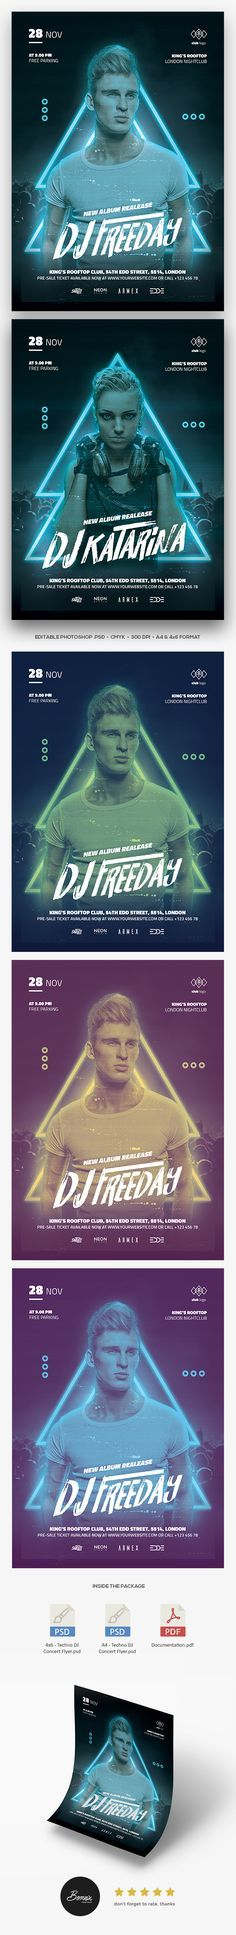 DJ Concert flyer template for Photoshop pergect to promote your DJ concert, nightclub party, EDM concert, or any DJ events #flyer #poster #template #adobe #photoshop #envato #graphicriver #DJ #edm #nightclub #party #techno #banner #promotion